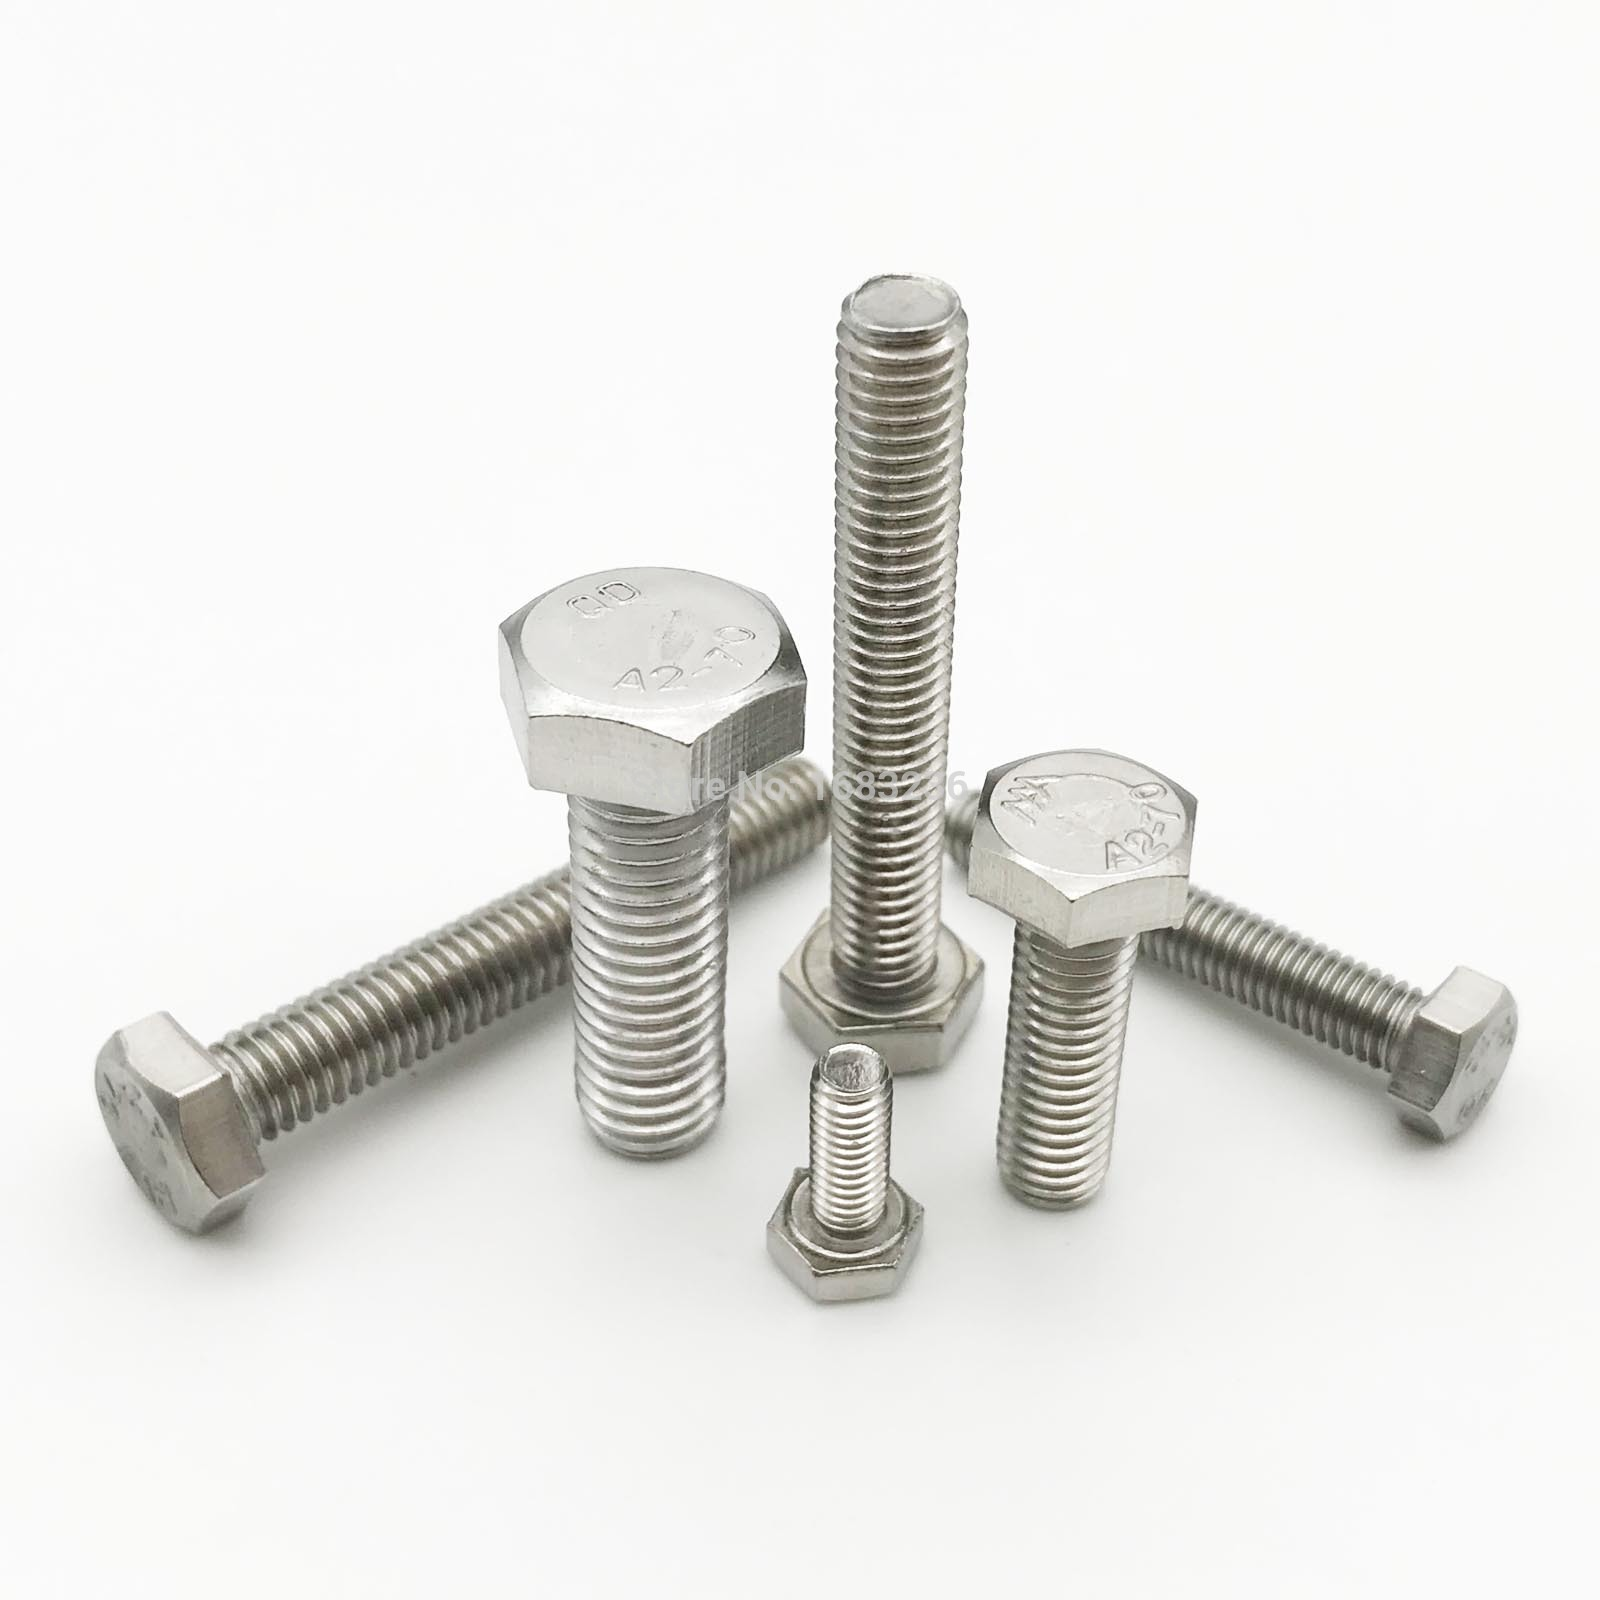 M4 M5 M6 M8 Stainless Steel Hexagonal Screws Outside Hex Bolt Bolts For Electrical Machine Equipment Wheel Construction M8-12mm 10pcs